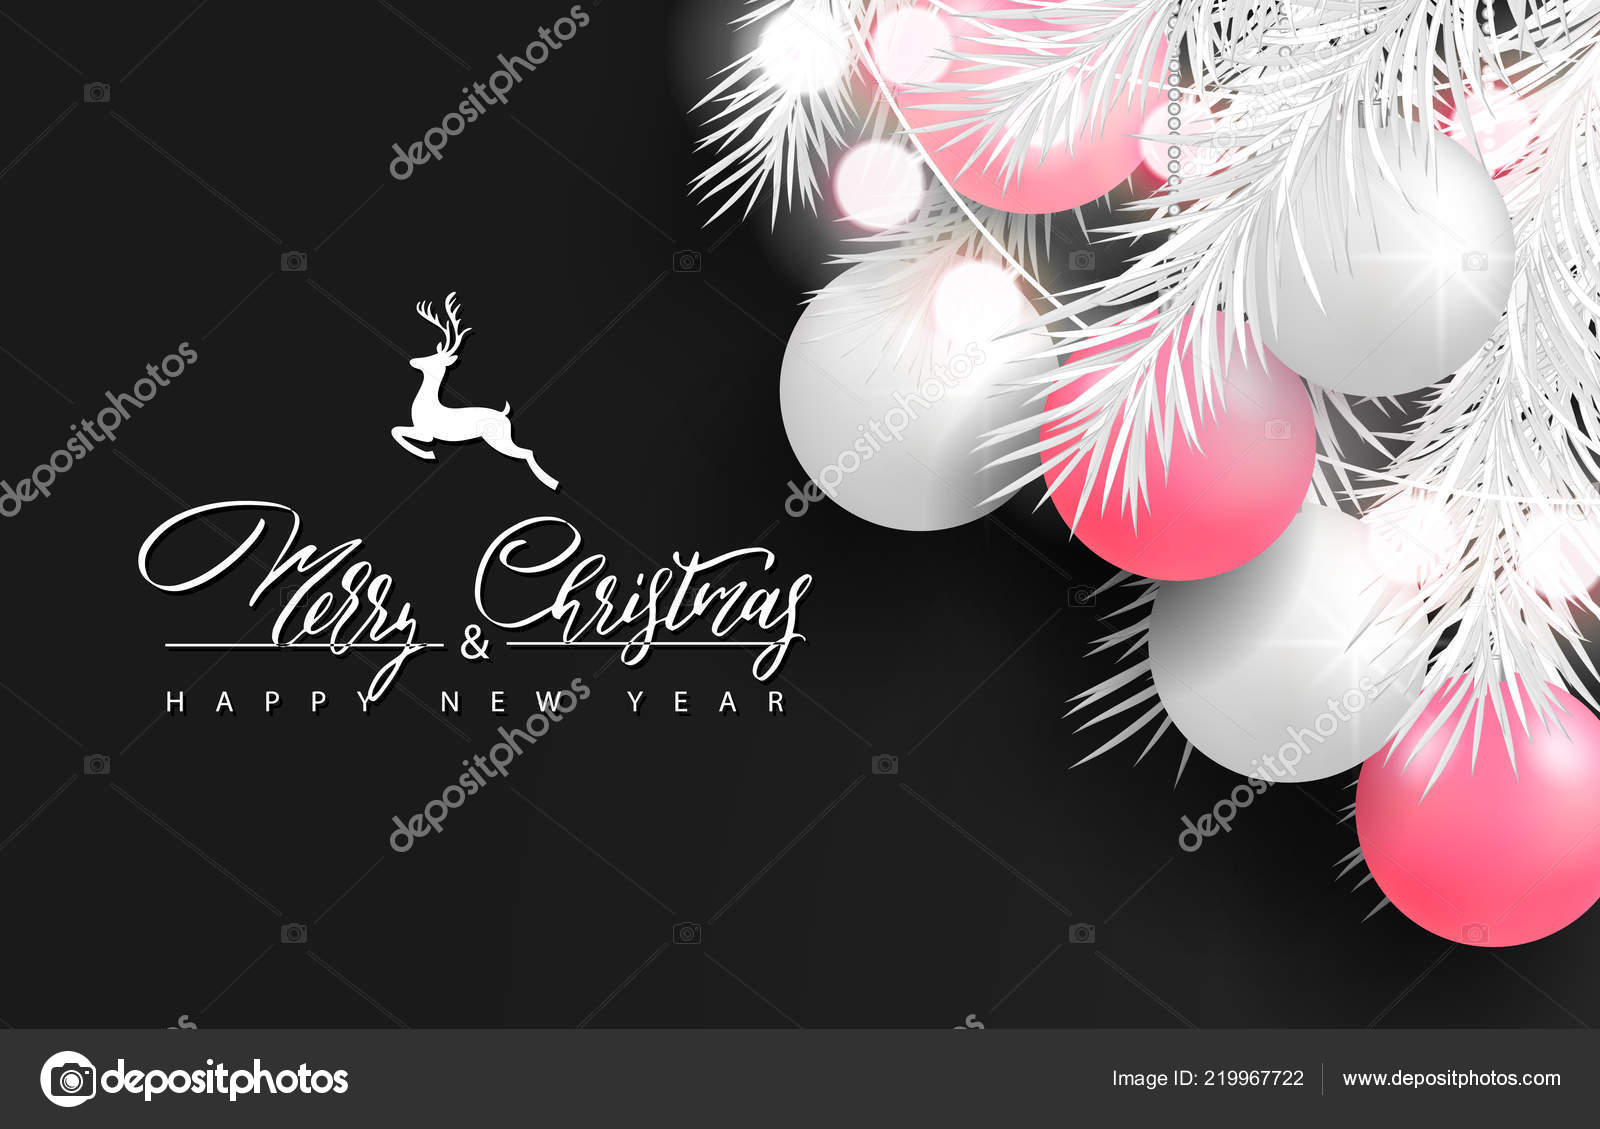 2019 Merry Christmas And Happy New Year Background For Holiday